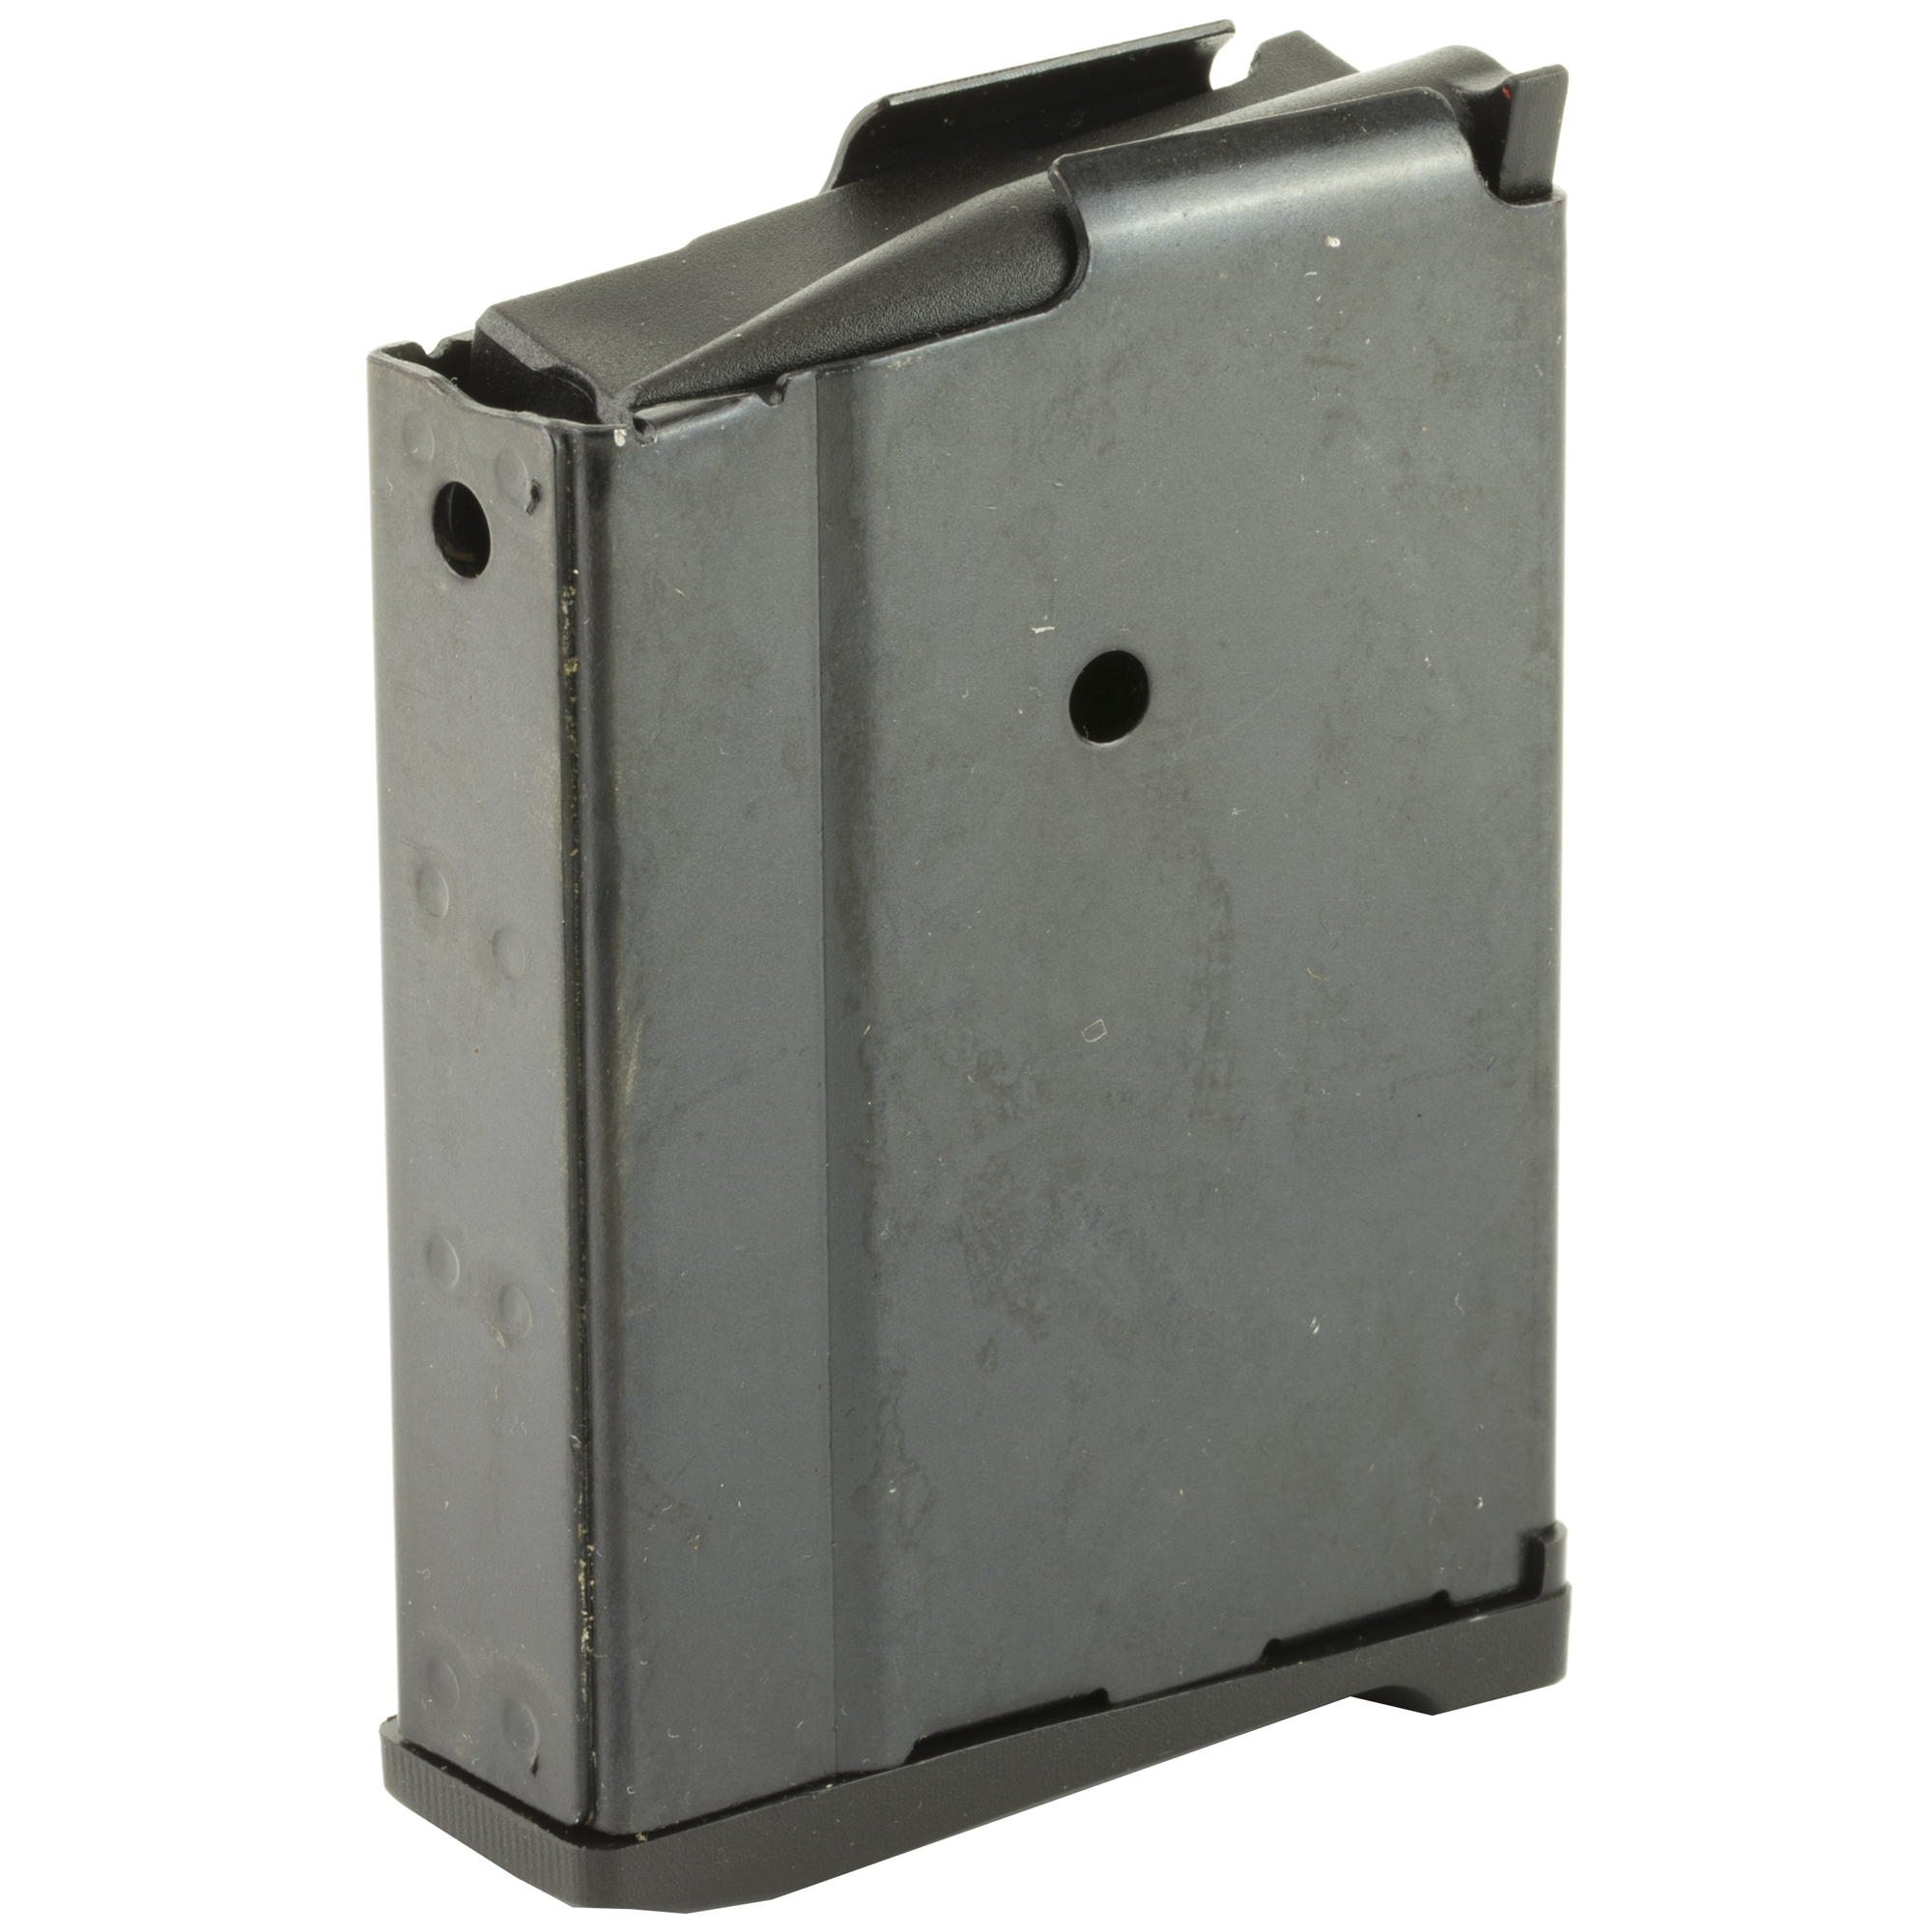 Promag Ruger Mini 30 762x39 10rd Bl